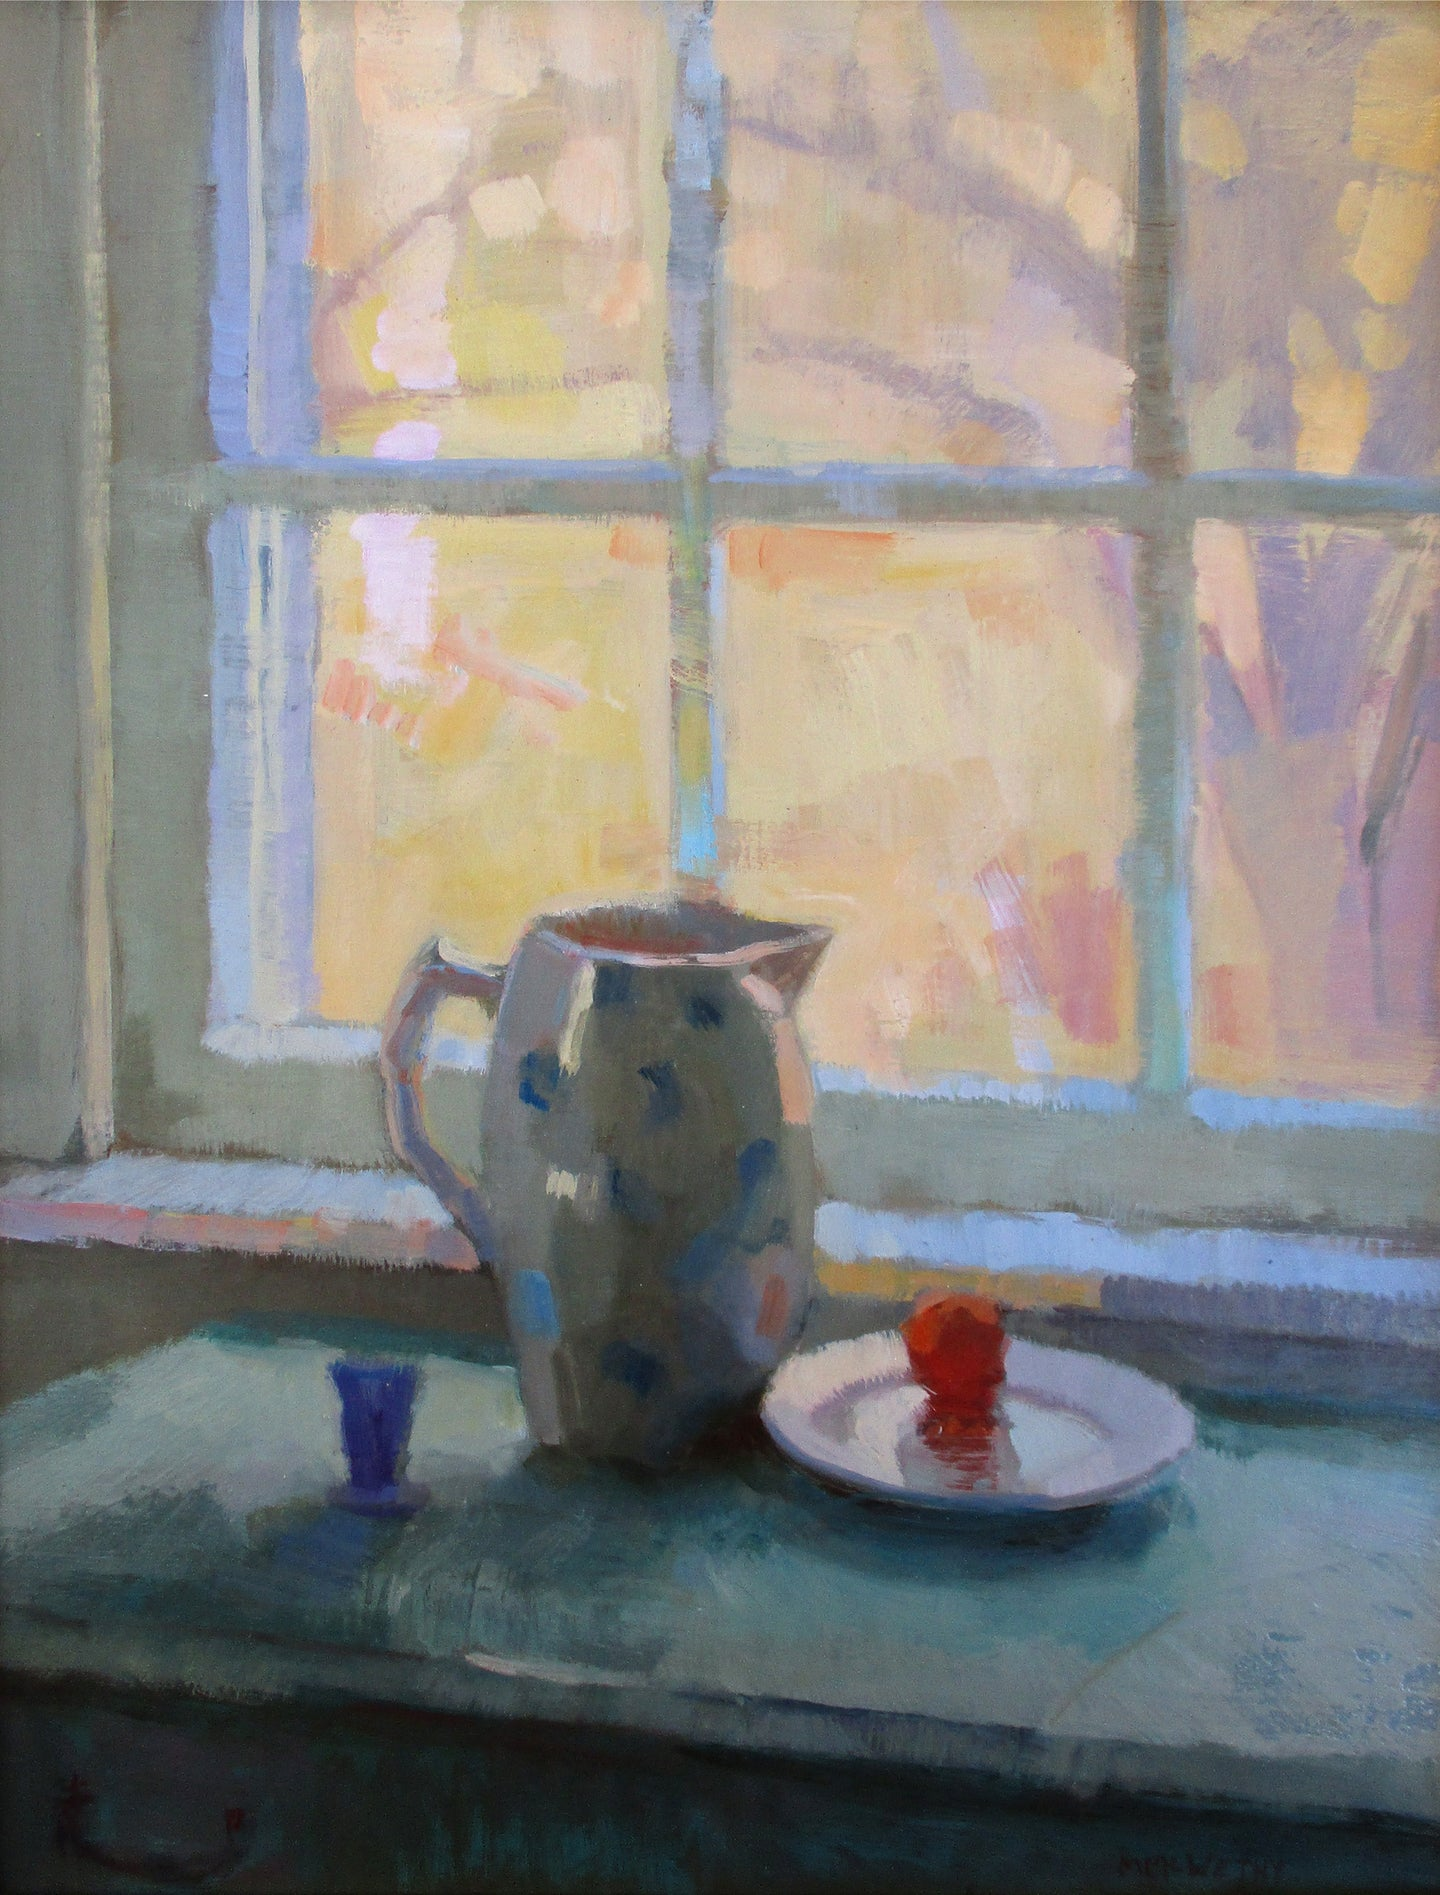 Pitcher in the Window